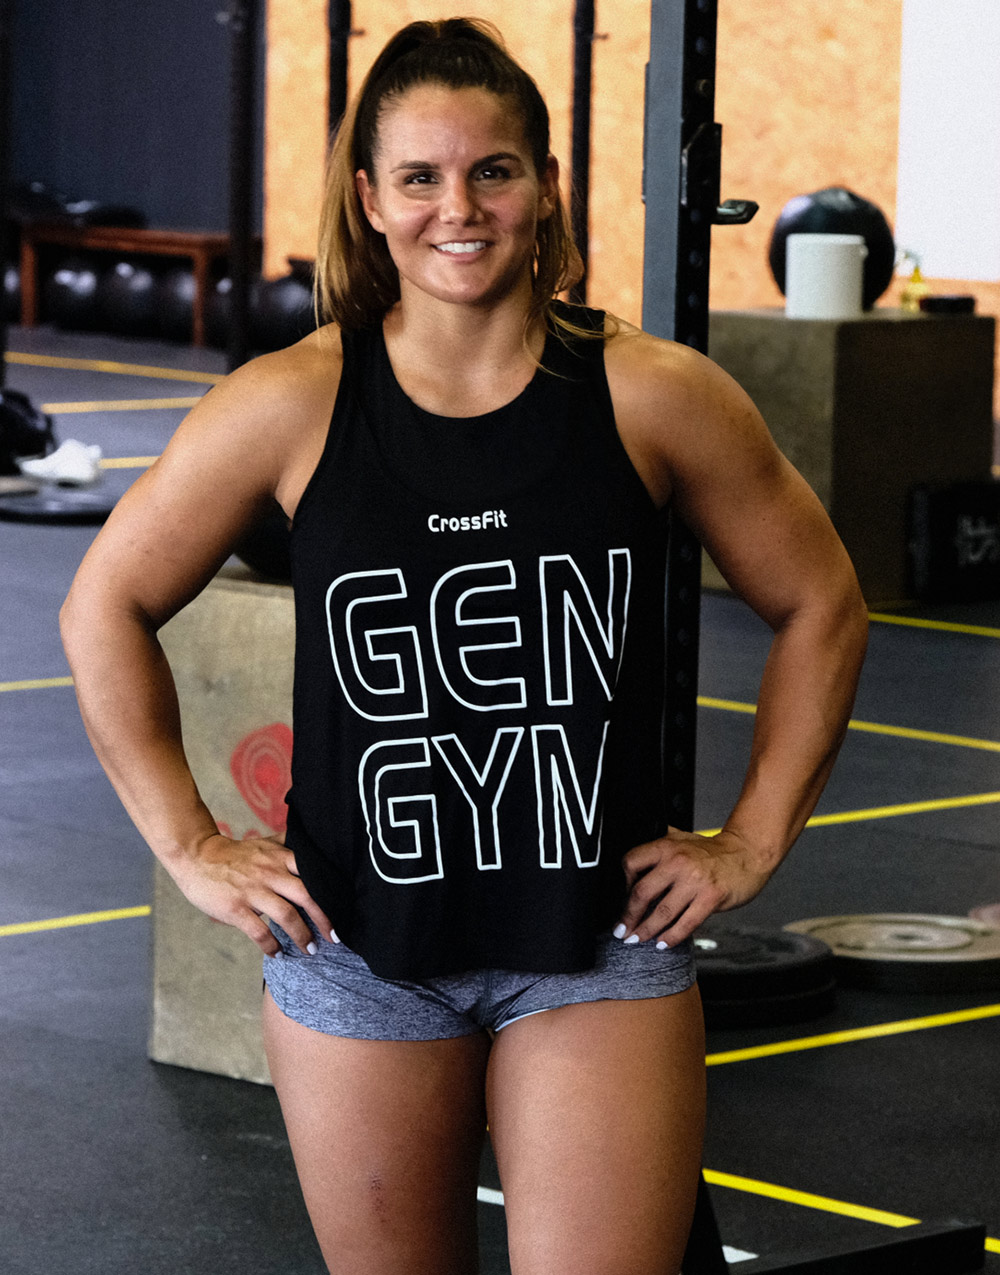 GEN GYM Women Top